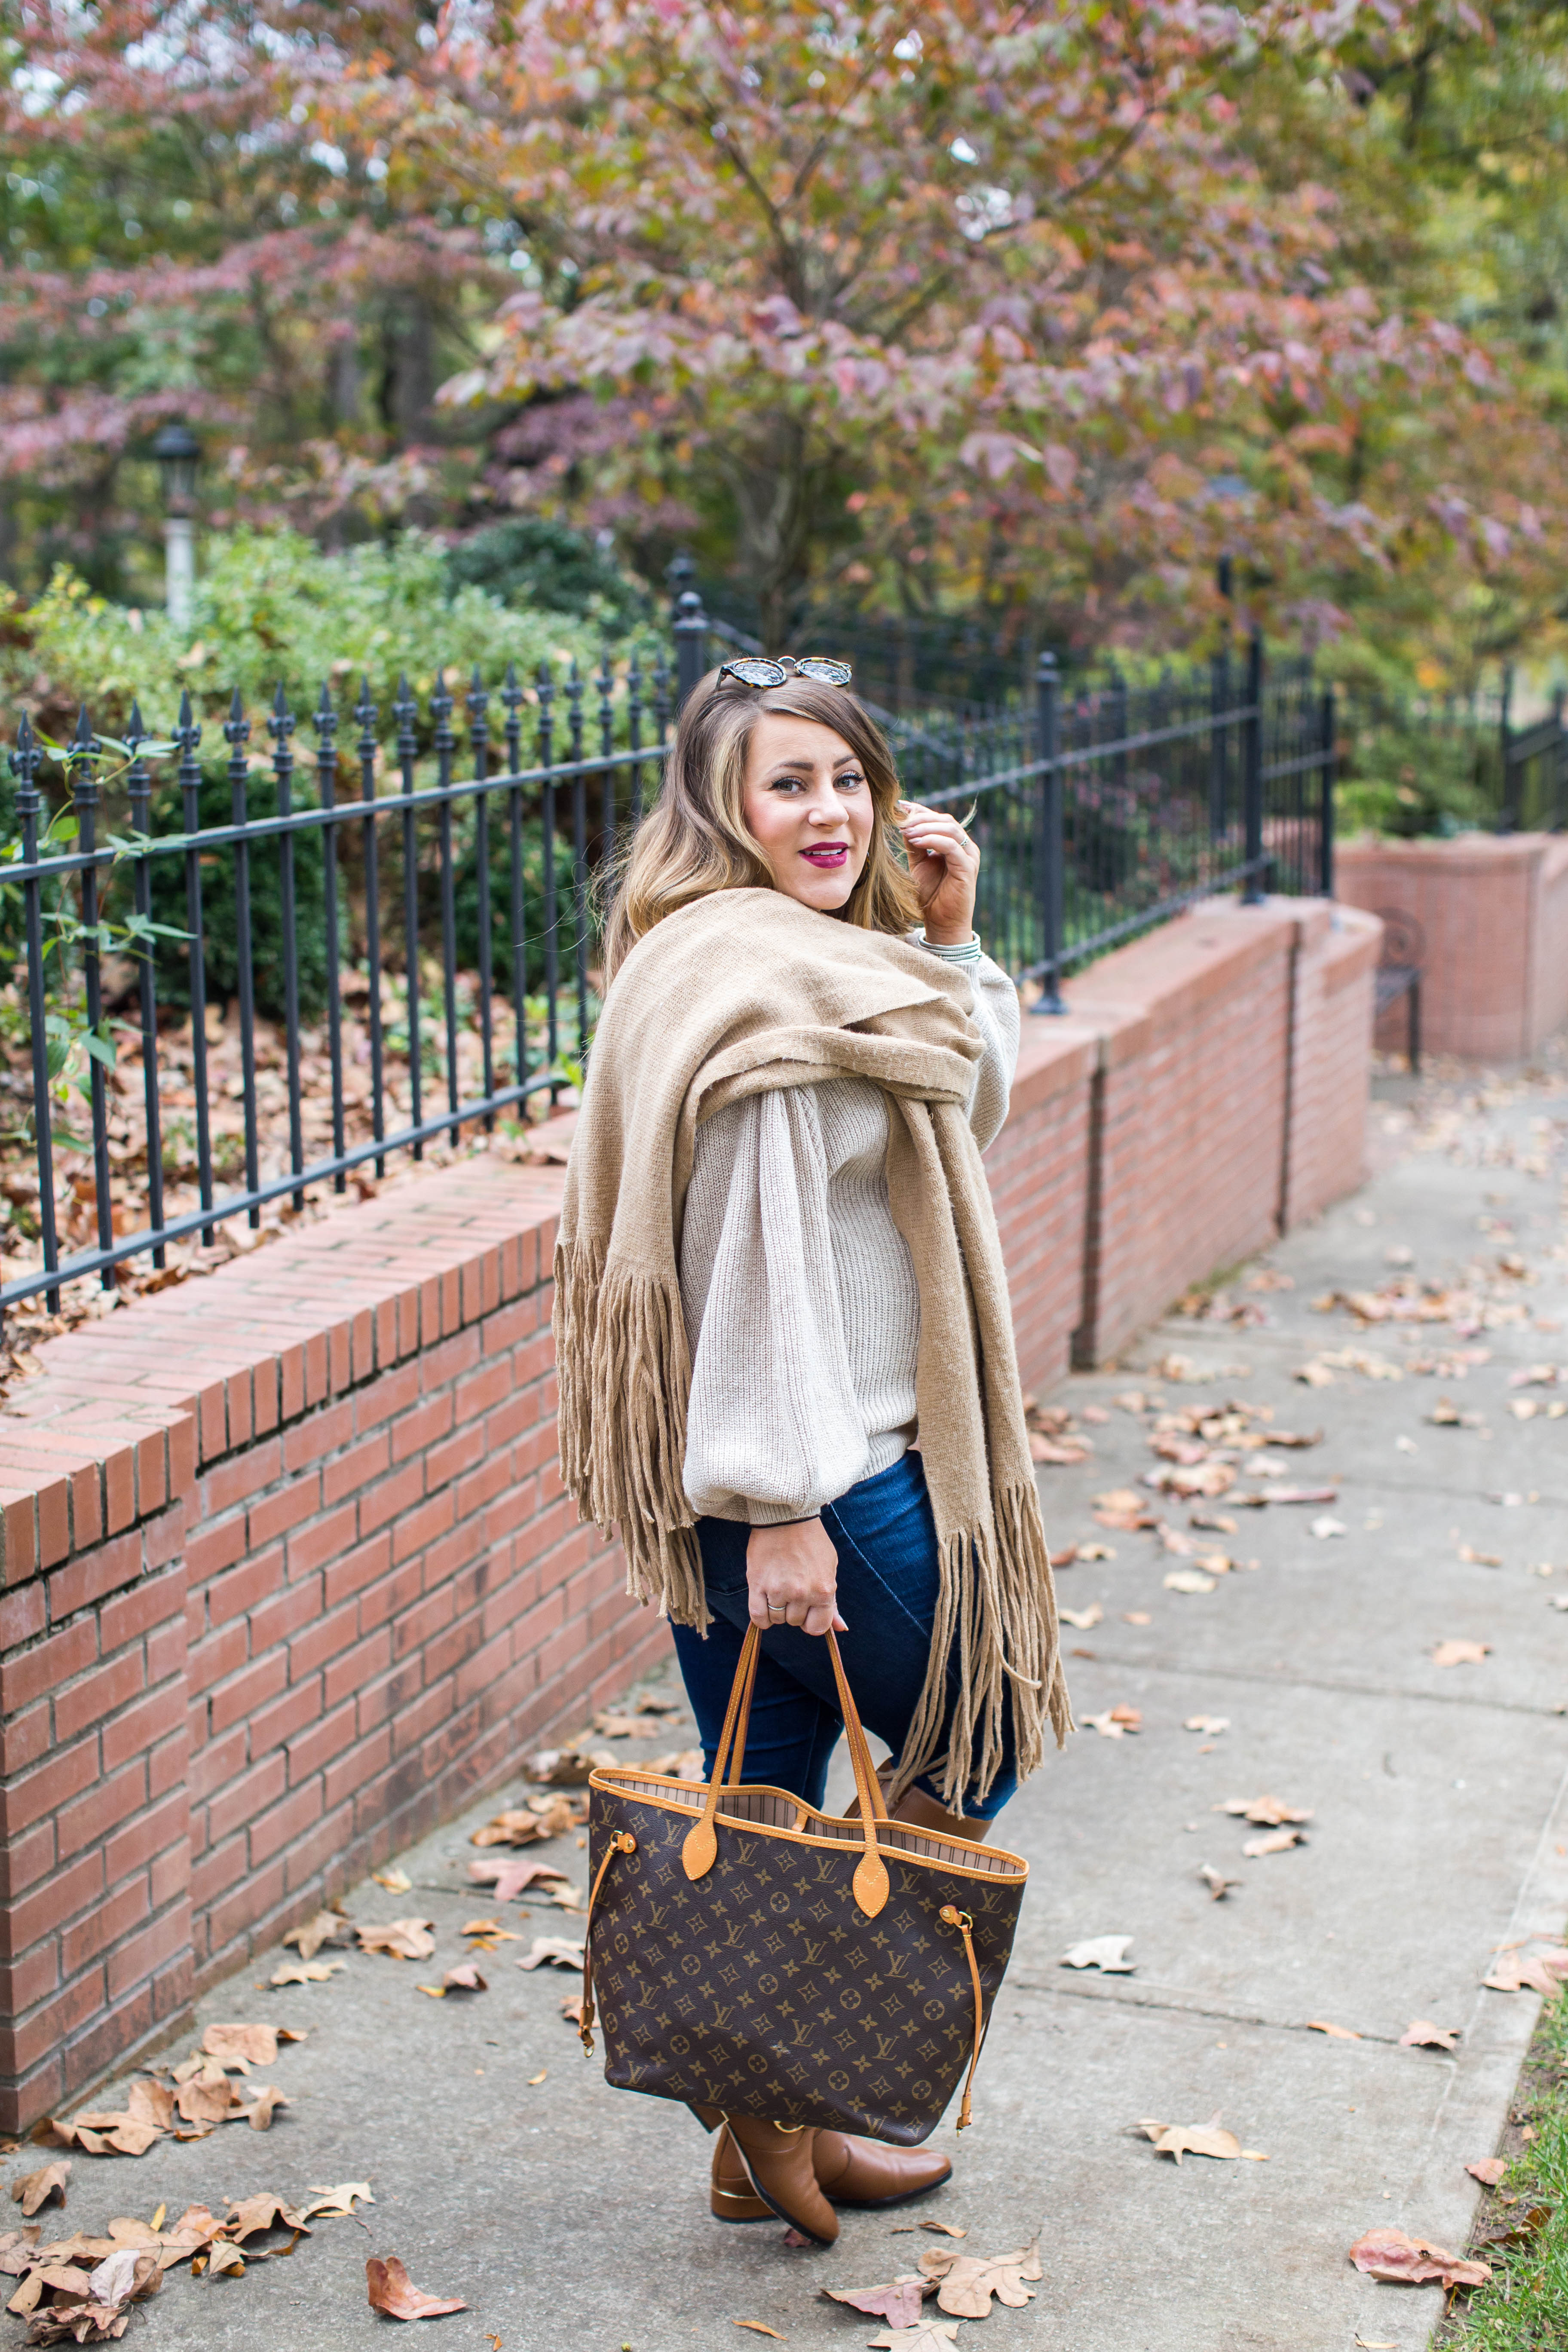 All Neutrals - Neutral Outfits Inspiration by North Carolina fashion blogger Coffee Beans and Bobby Pins